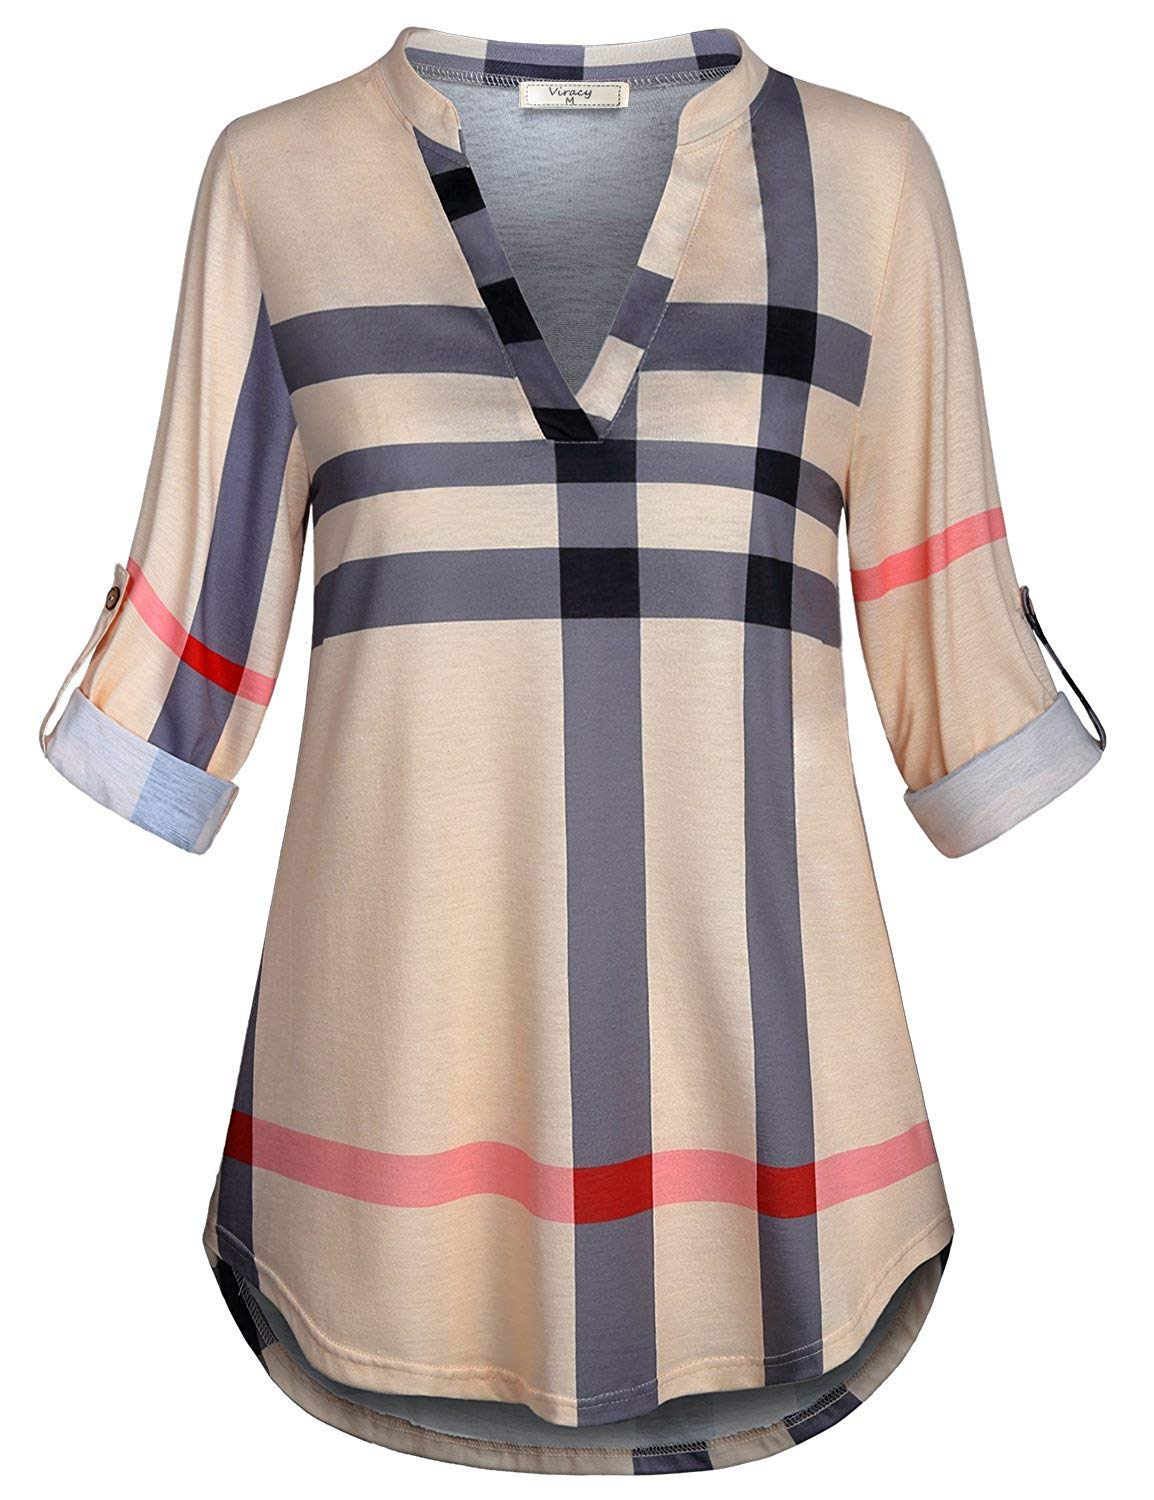 Viracy Plaid Tunic, Women Shirts for Leggings 3/4 Roll Sleeve Blouses V Neck Loose Pattern Dressy Henleys Business Casual Tops Easy Fit Flowy Aline Pullover Soft Surroundings Beige XXL